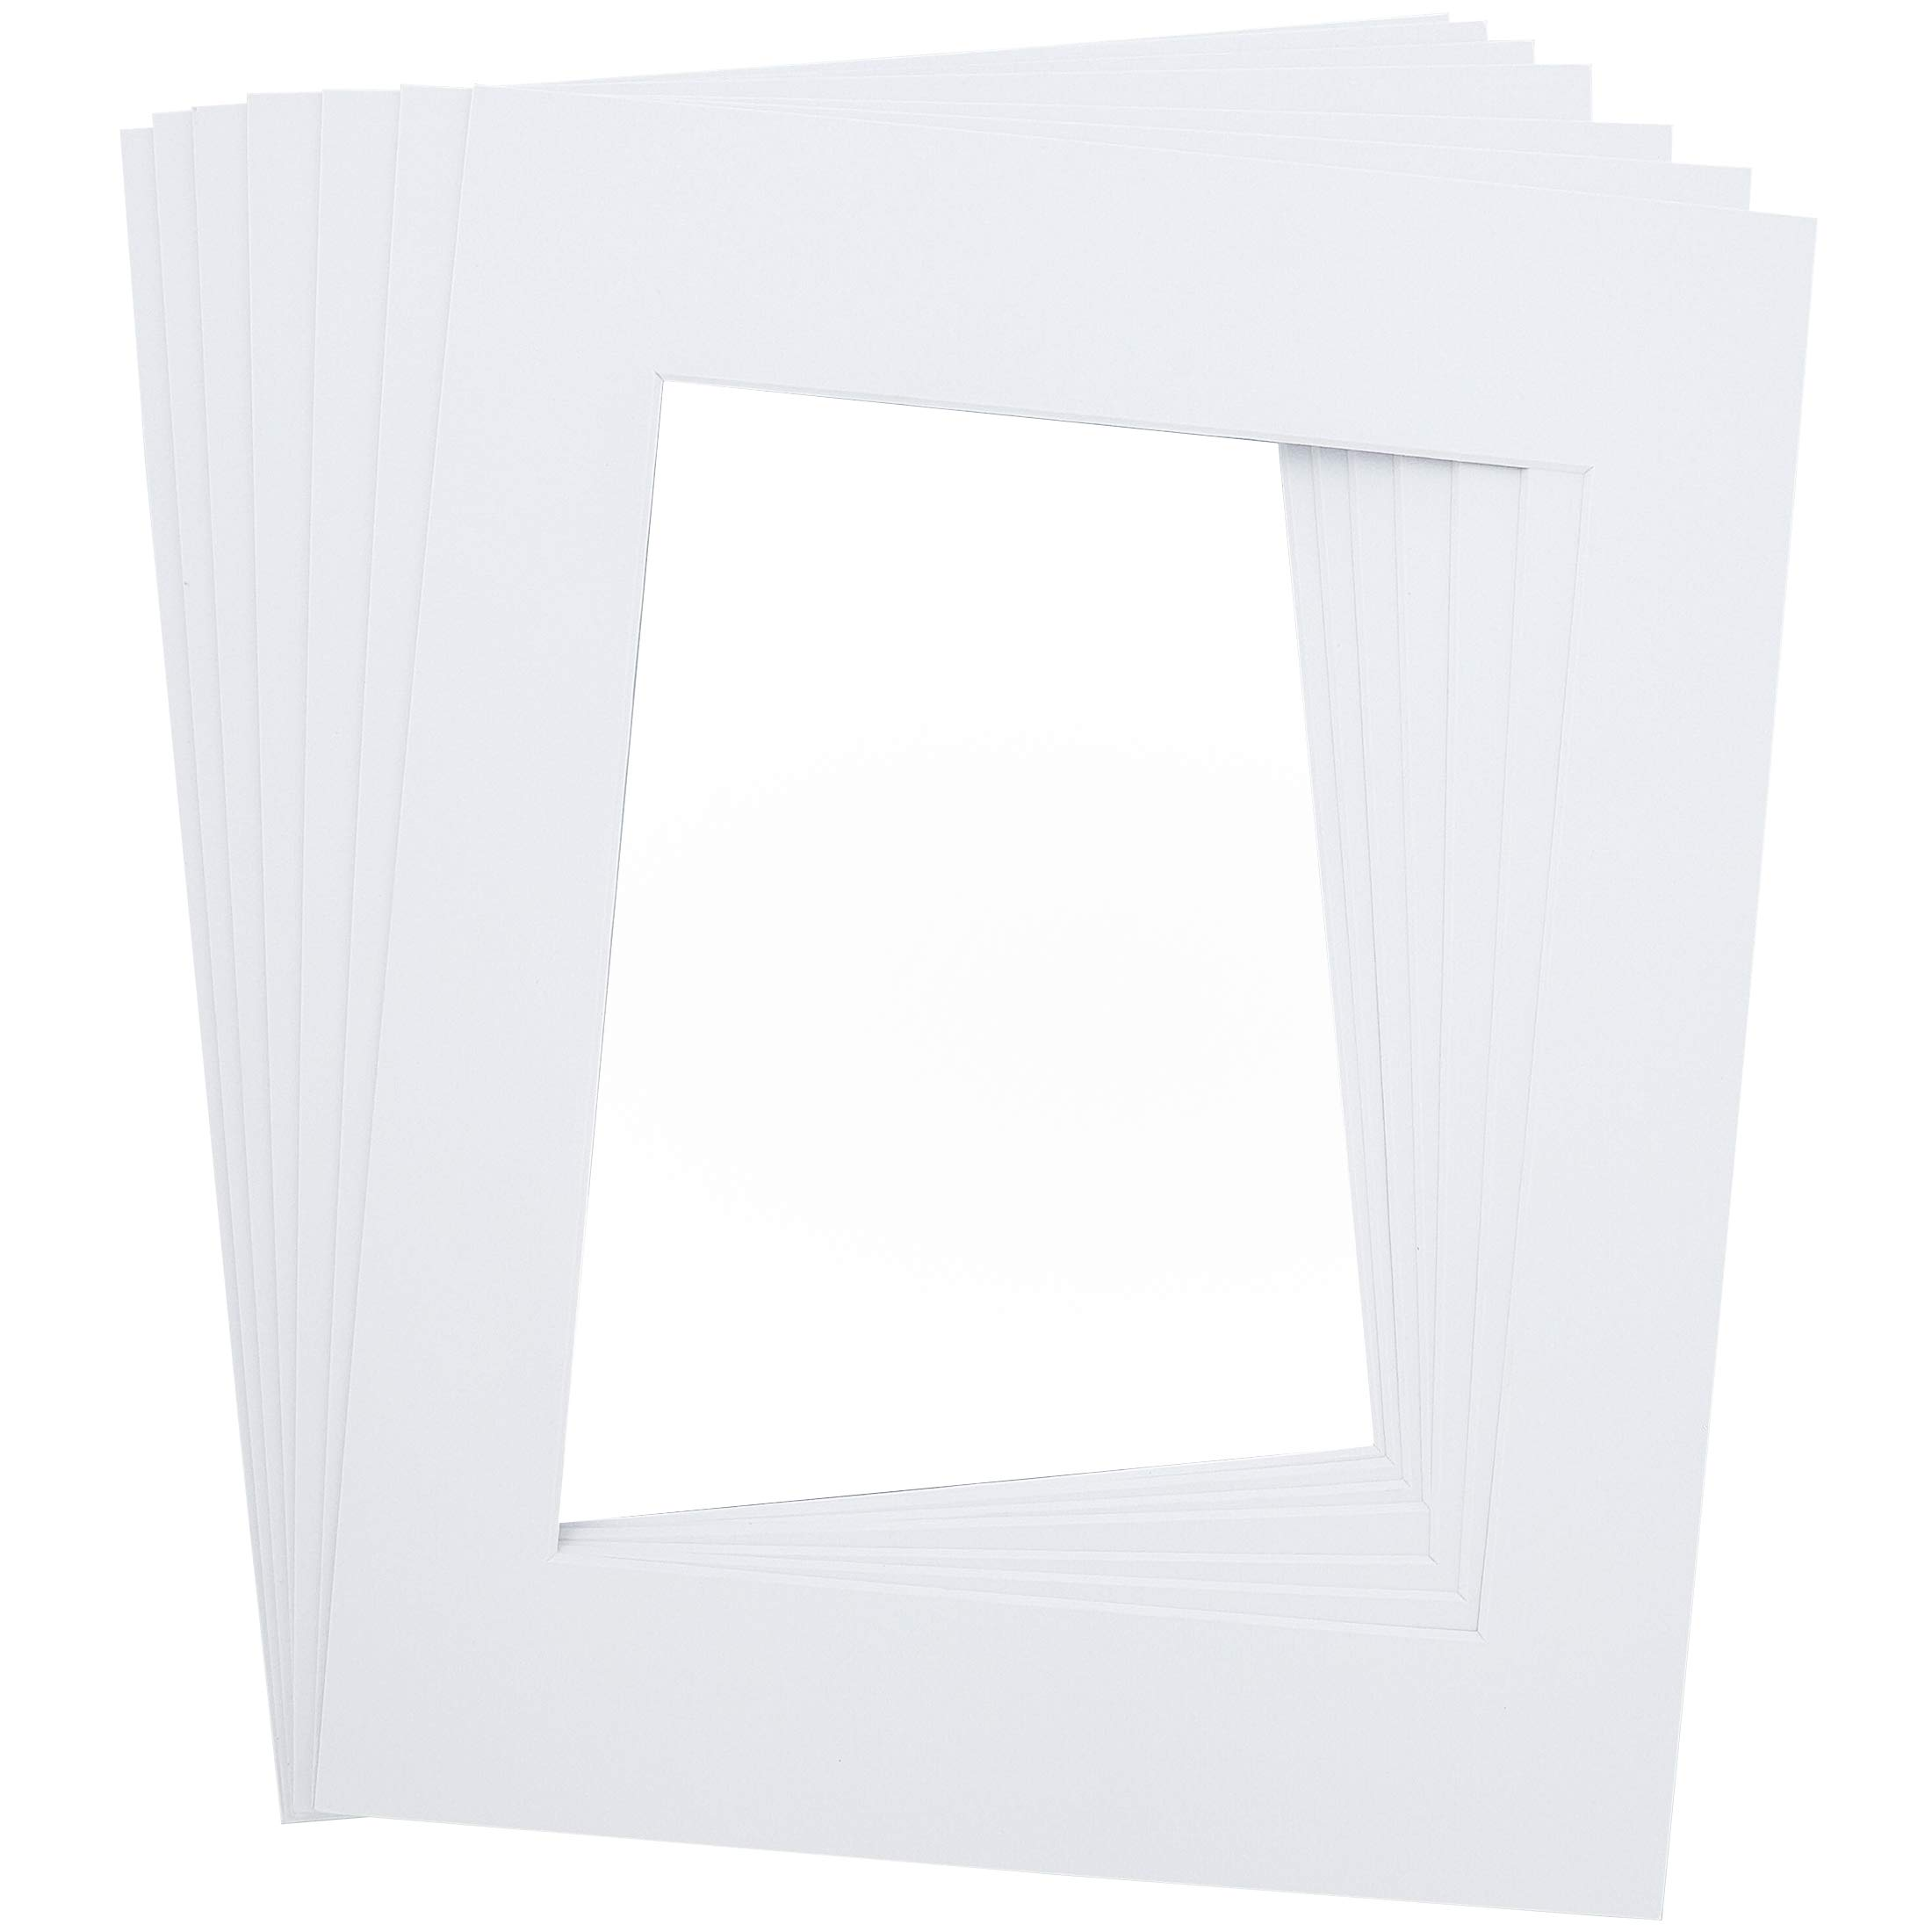 Bright Creations 15-Pack White 11 x 14 Inch Picture Matted Frame Boards for 8x10 Photos, Acid Free by Bright Creations